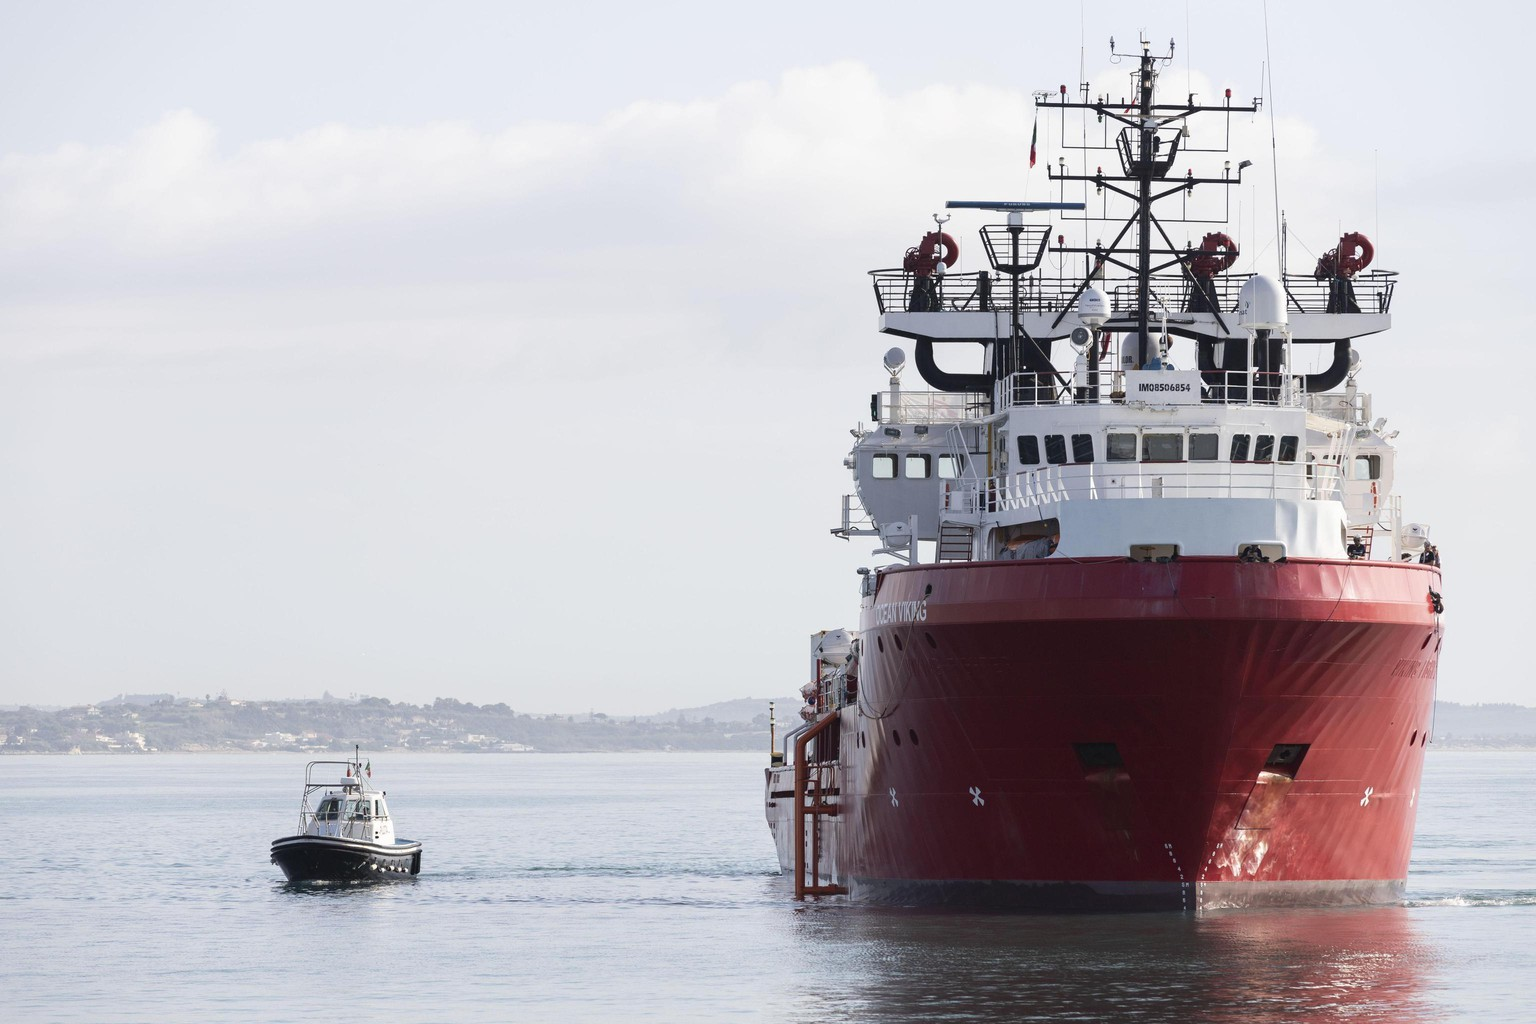 The humanitarian rescue ship Ocean Viking arrives at Pozzallo harbor, in Sicily, southern Italy, Wednesday, Oct. 30, 2019. A humanitarian rescue ship operated by two French charities has arrived at a port in Sicily after nearly two weeks blocked at sea. Ocean Viking arrived in Pozzallo Wednesday morning, 12 days after it rescued 104 migrants from a rubber dinghy off Libya. Ocean Viking refused a Libyan instruction to land there, as it is not considered a place of safety.. (Francesco Ruta/ANSA via AP)